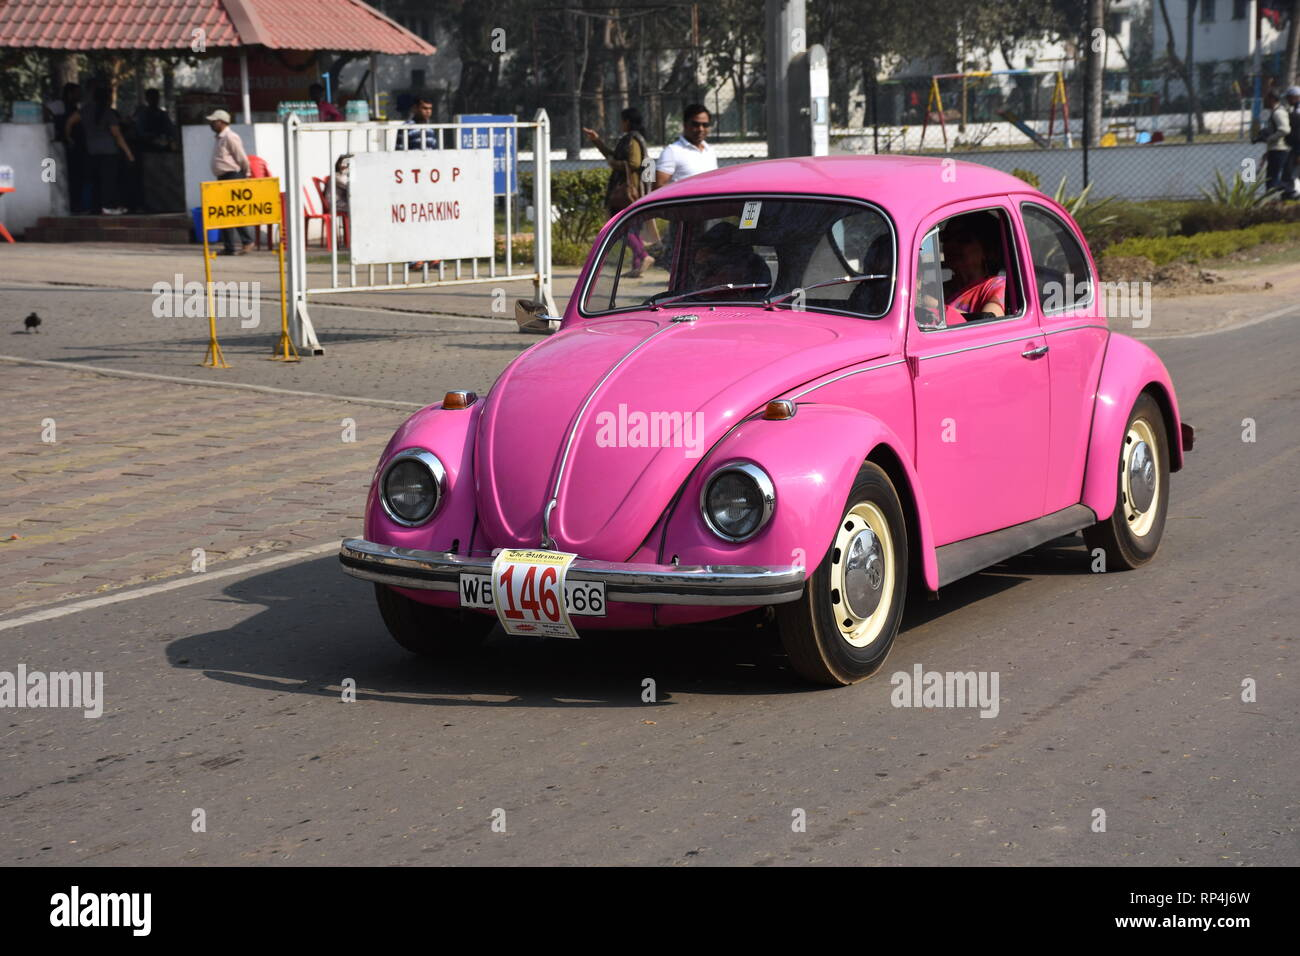 Car Vw 1300 Beetle High Resolution Stock Photography And Images Alamy